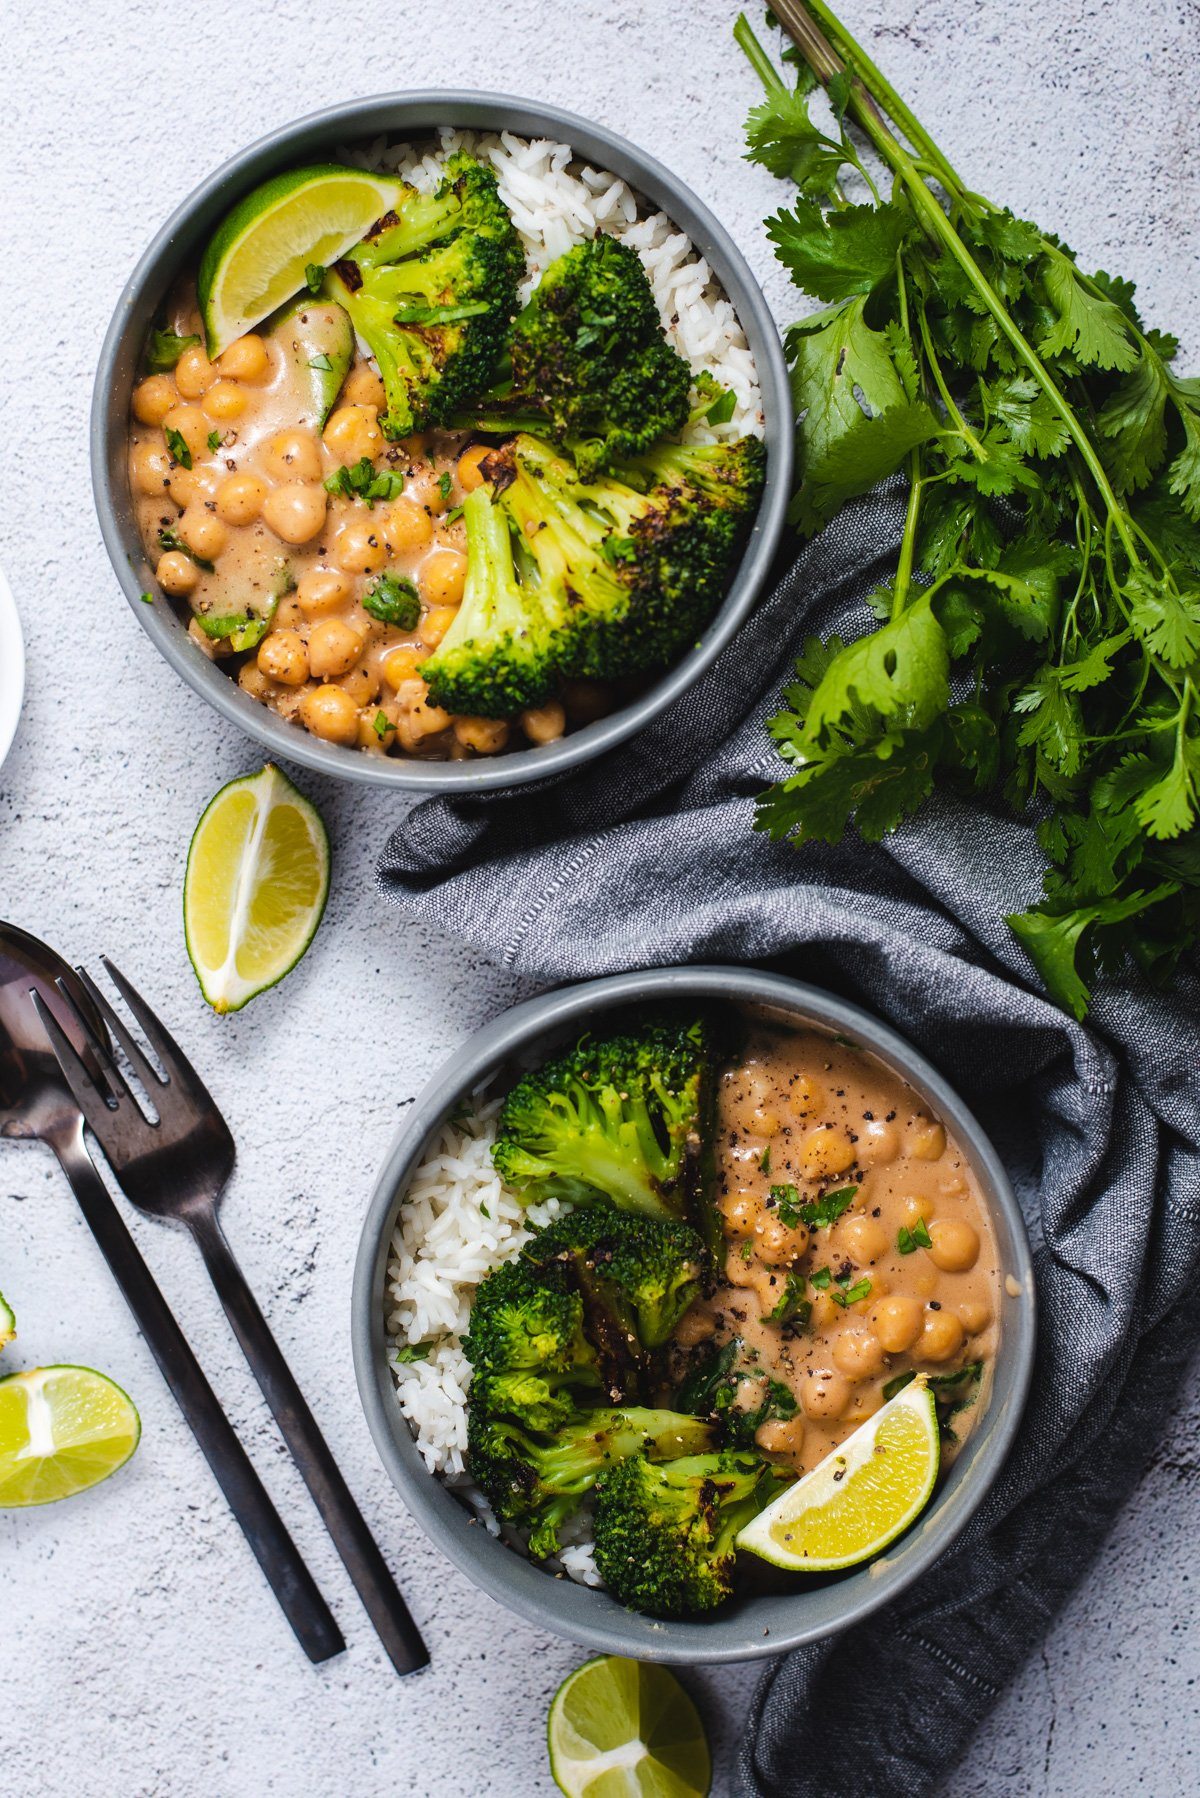 Two gray bowls filled with chickpeas, broccoli and rice on a gray background